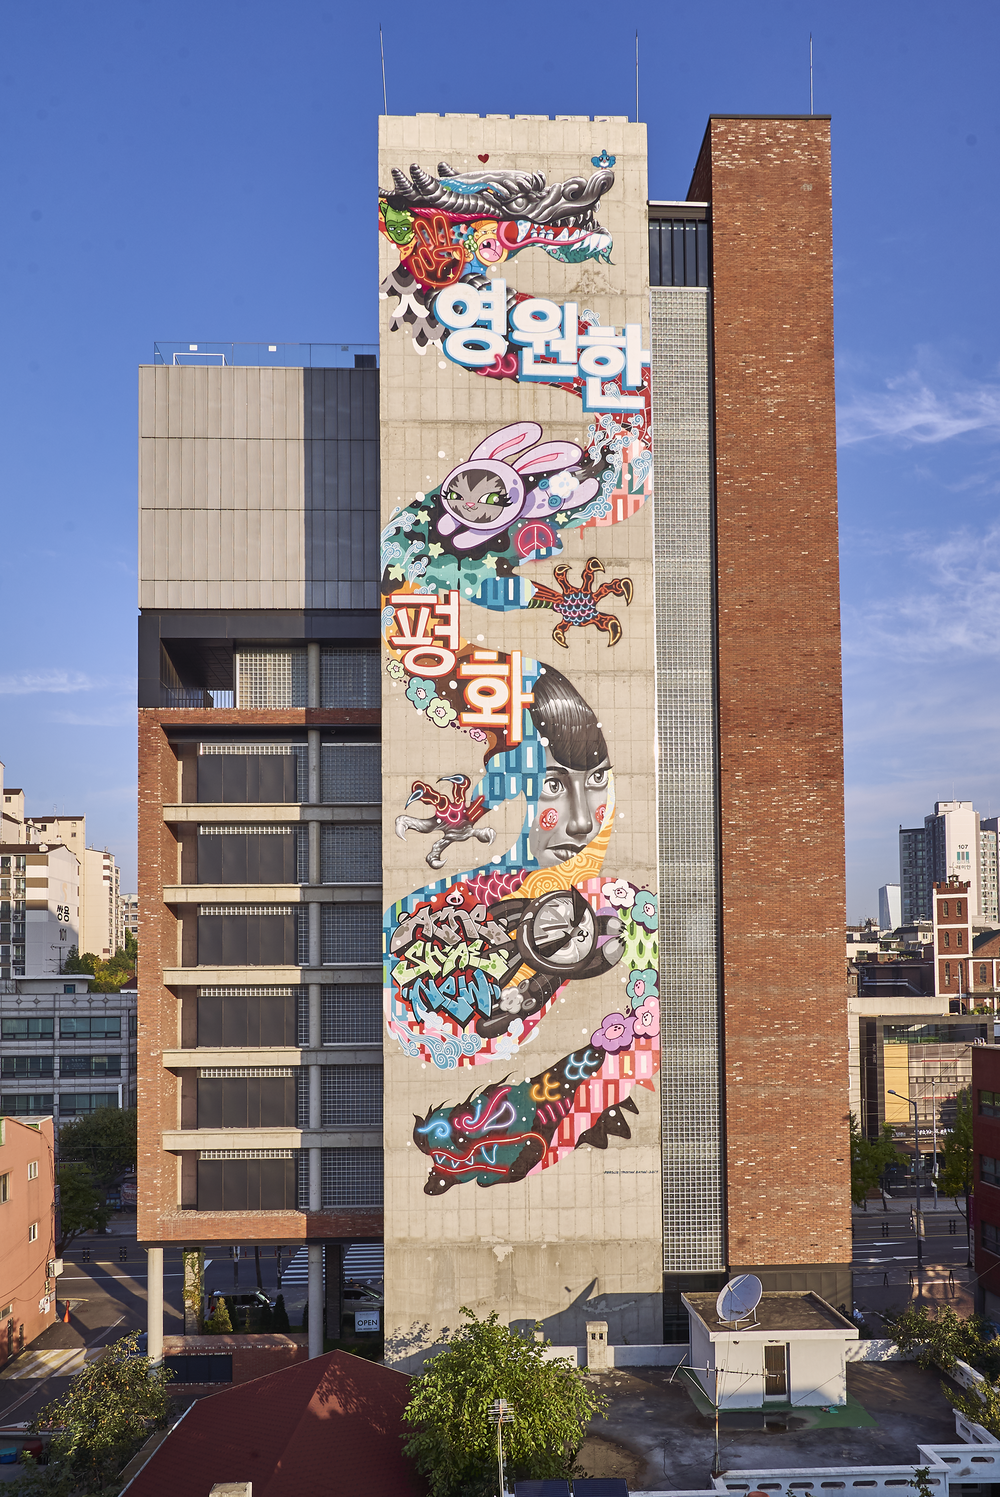 Mural by Tristan Eaton and Persue